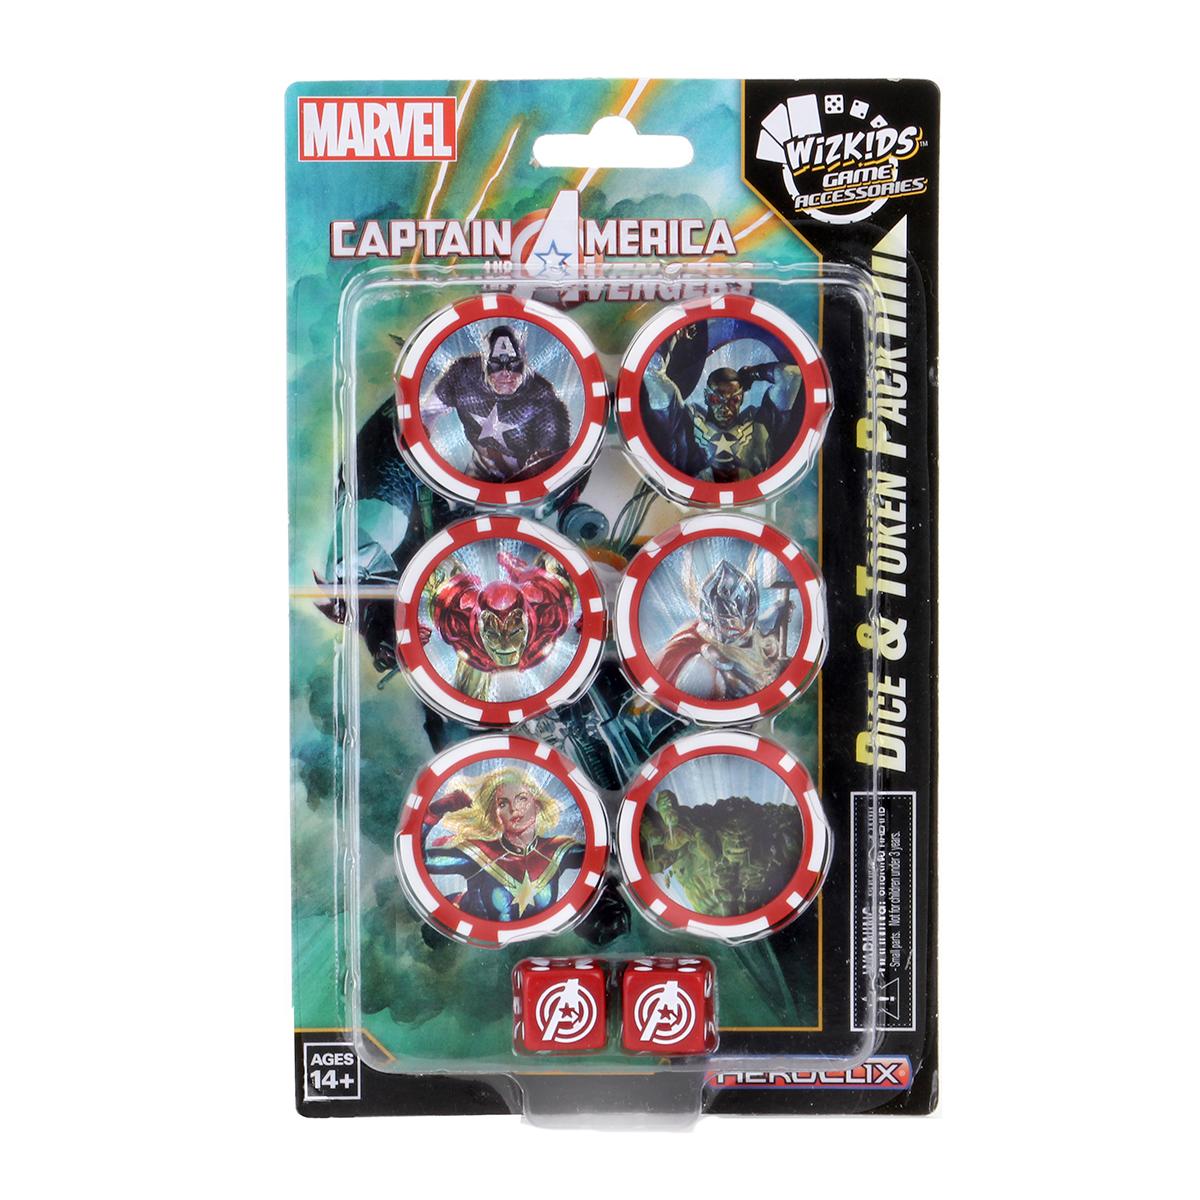 Heroclix Captain America and The Avengers set Industrial Spy #011 Common w//card!